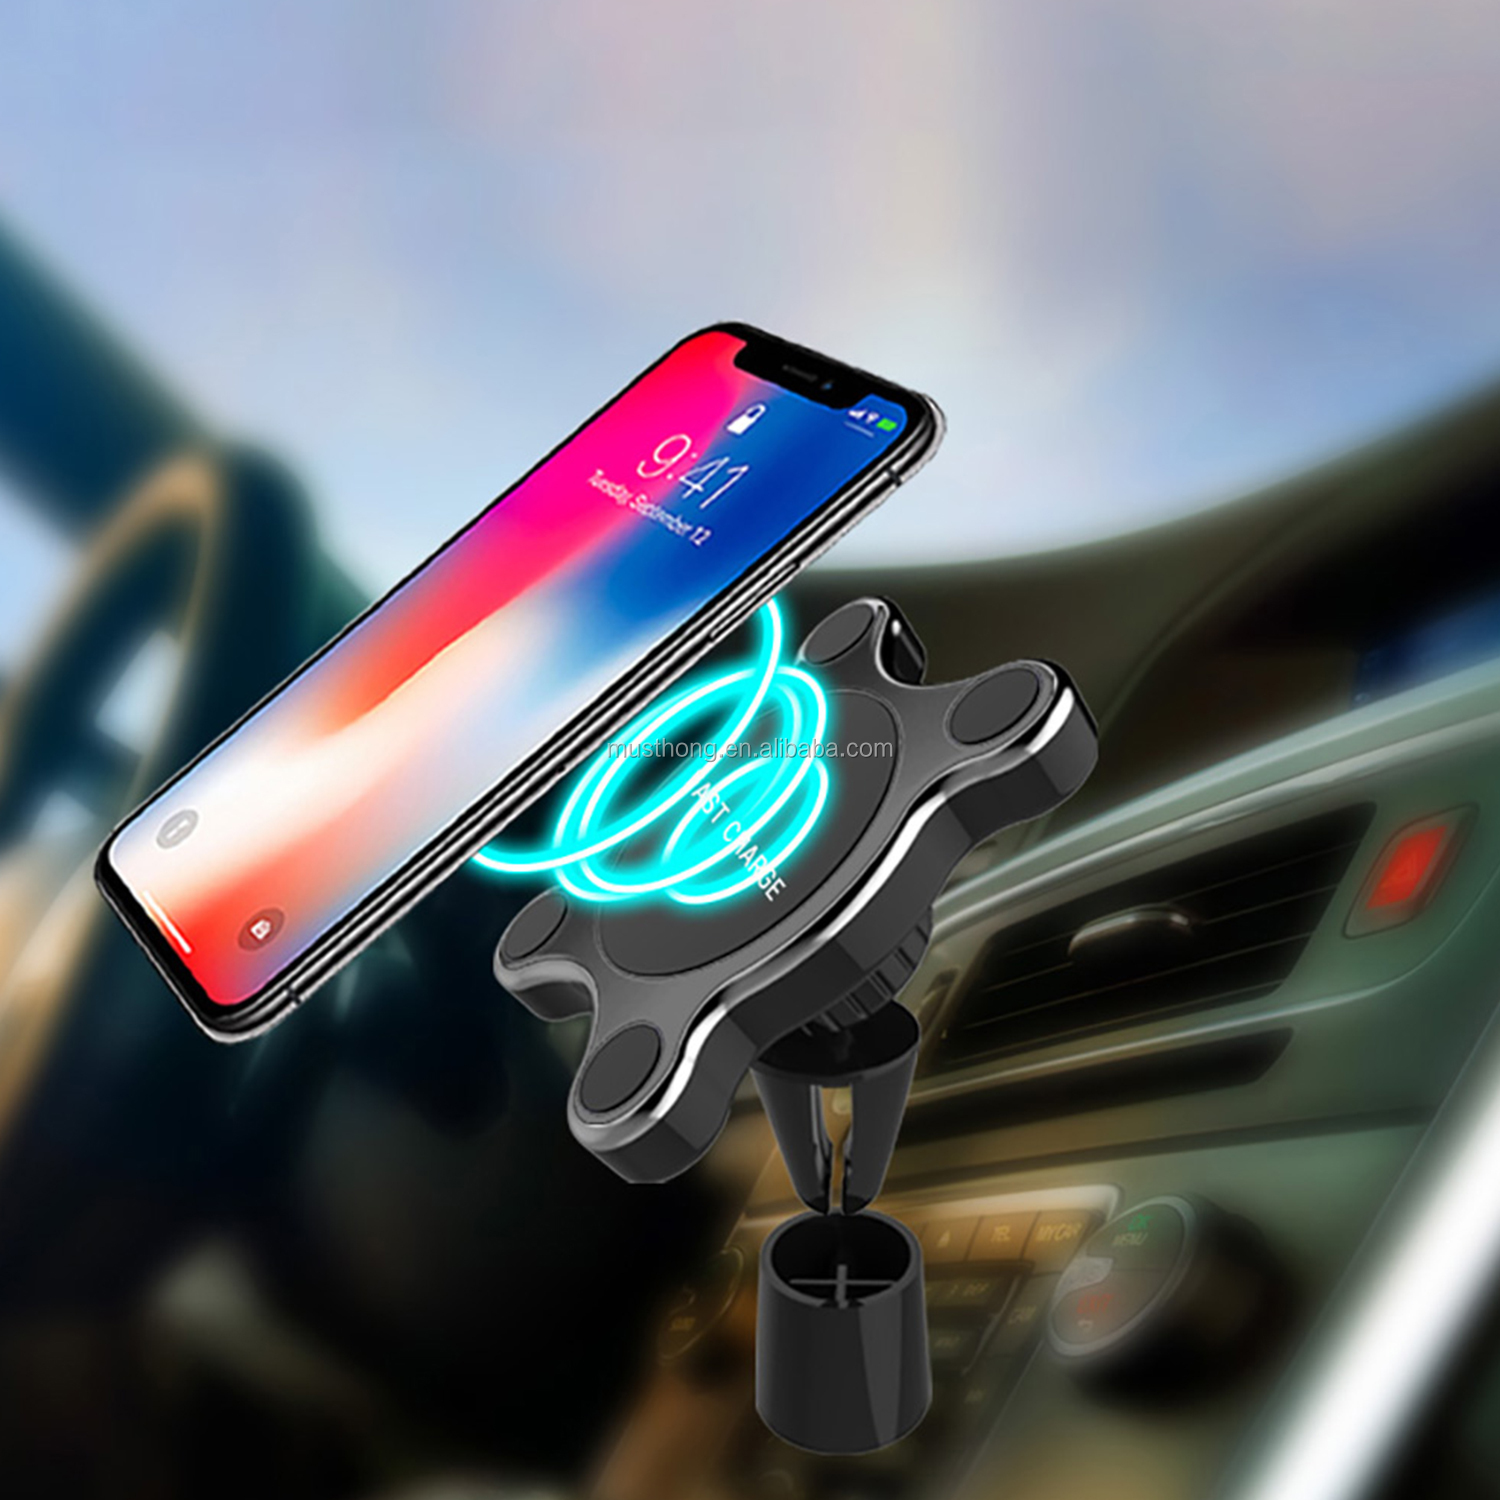 Magnetic Car Vent Phone Mount And Cell Phone Holder Stand With Qi Standard Fast Wireless Charging Function For iPhone 11 Pro Max